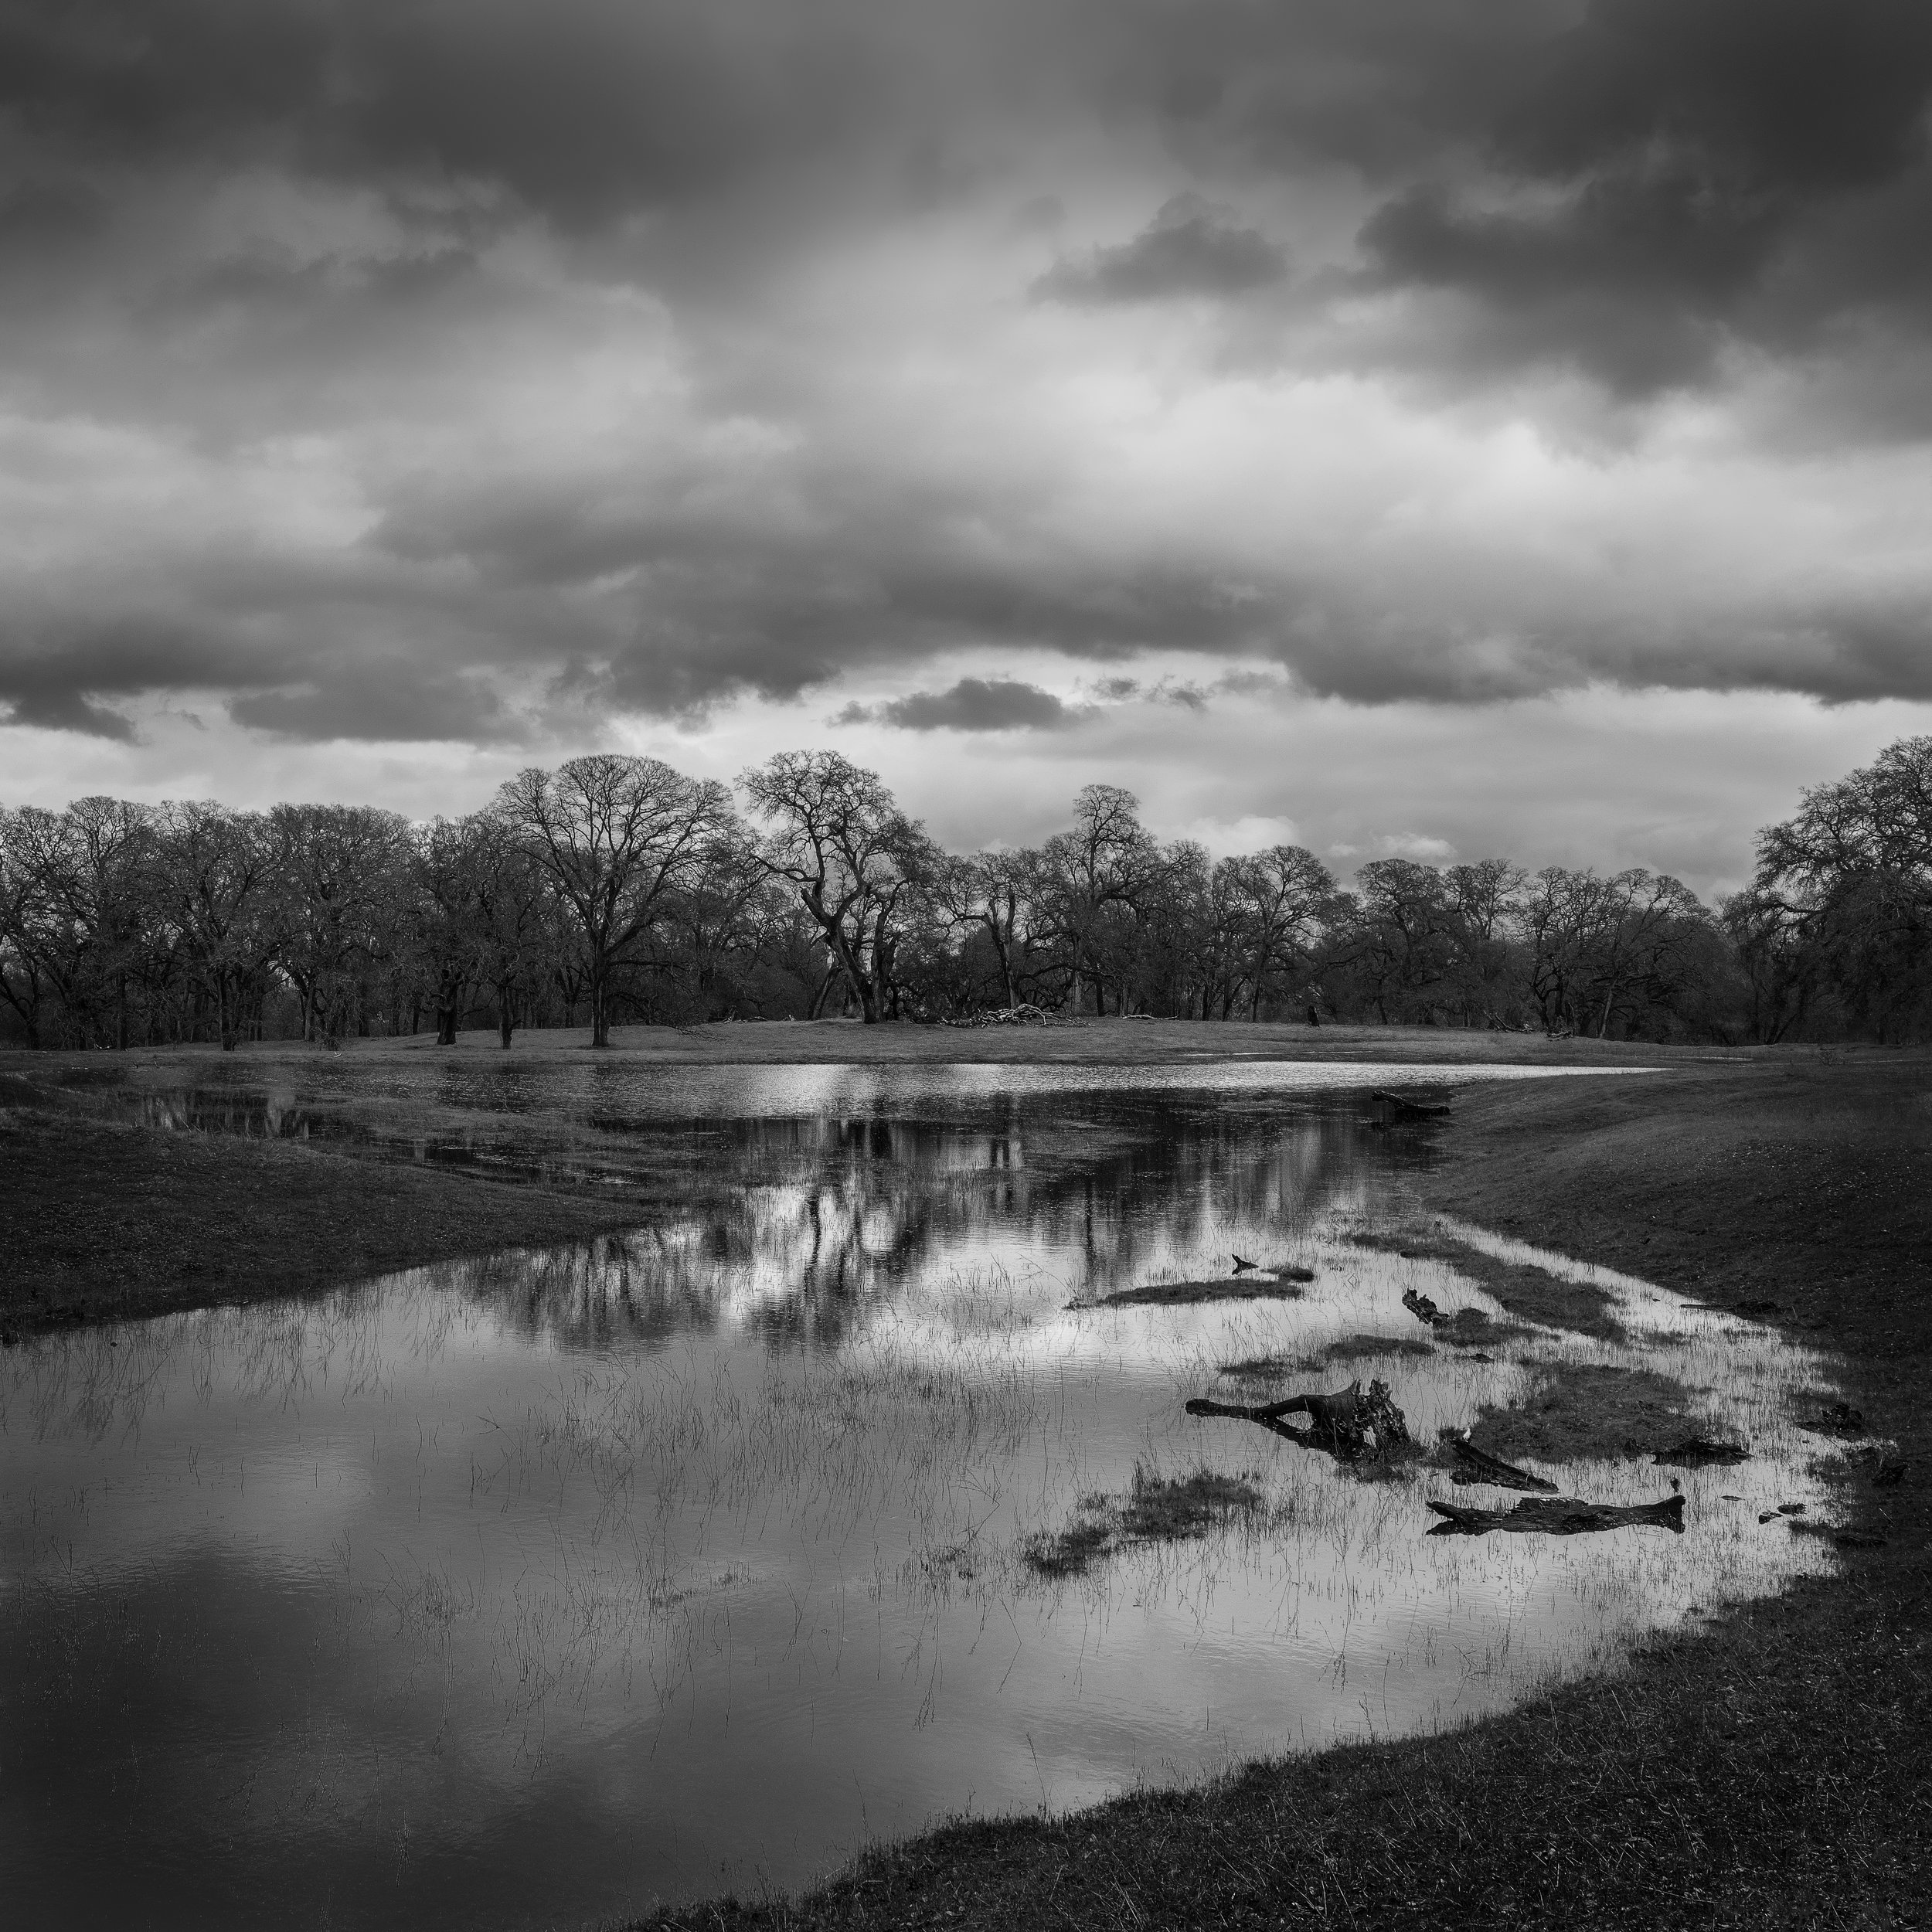 The Wetland at Branch Creek, Study 2